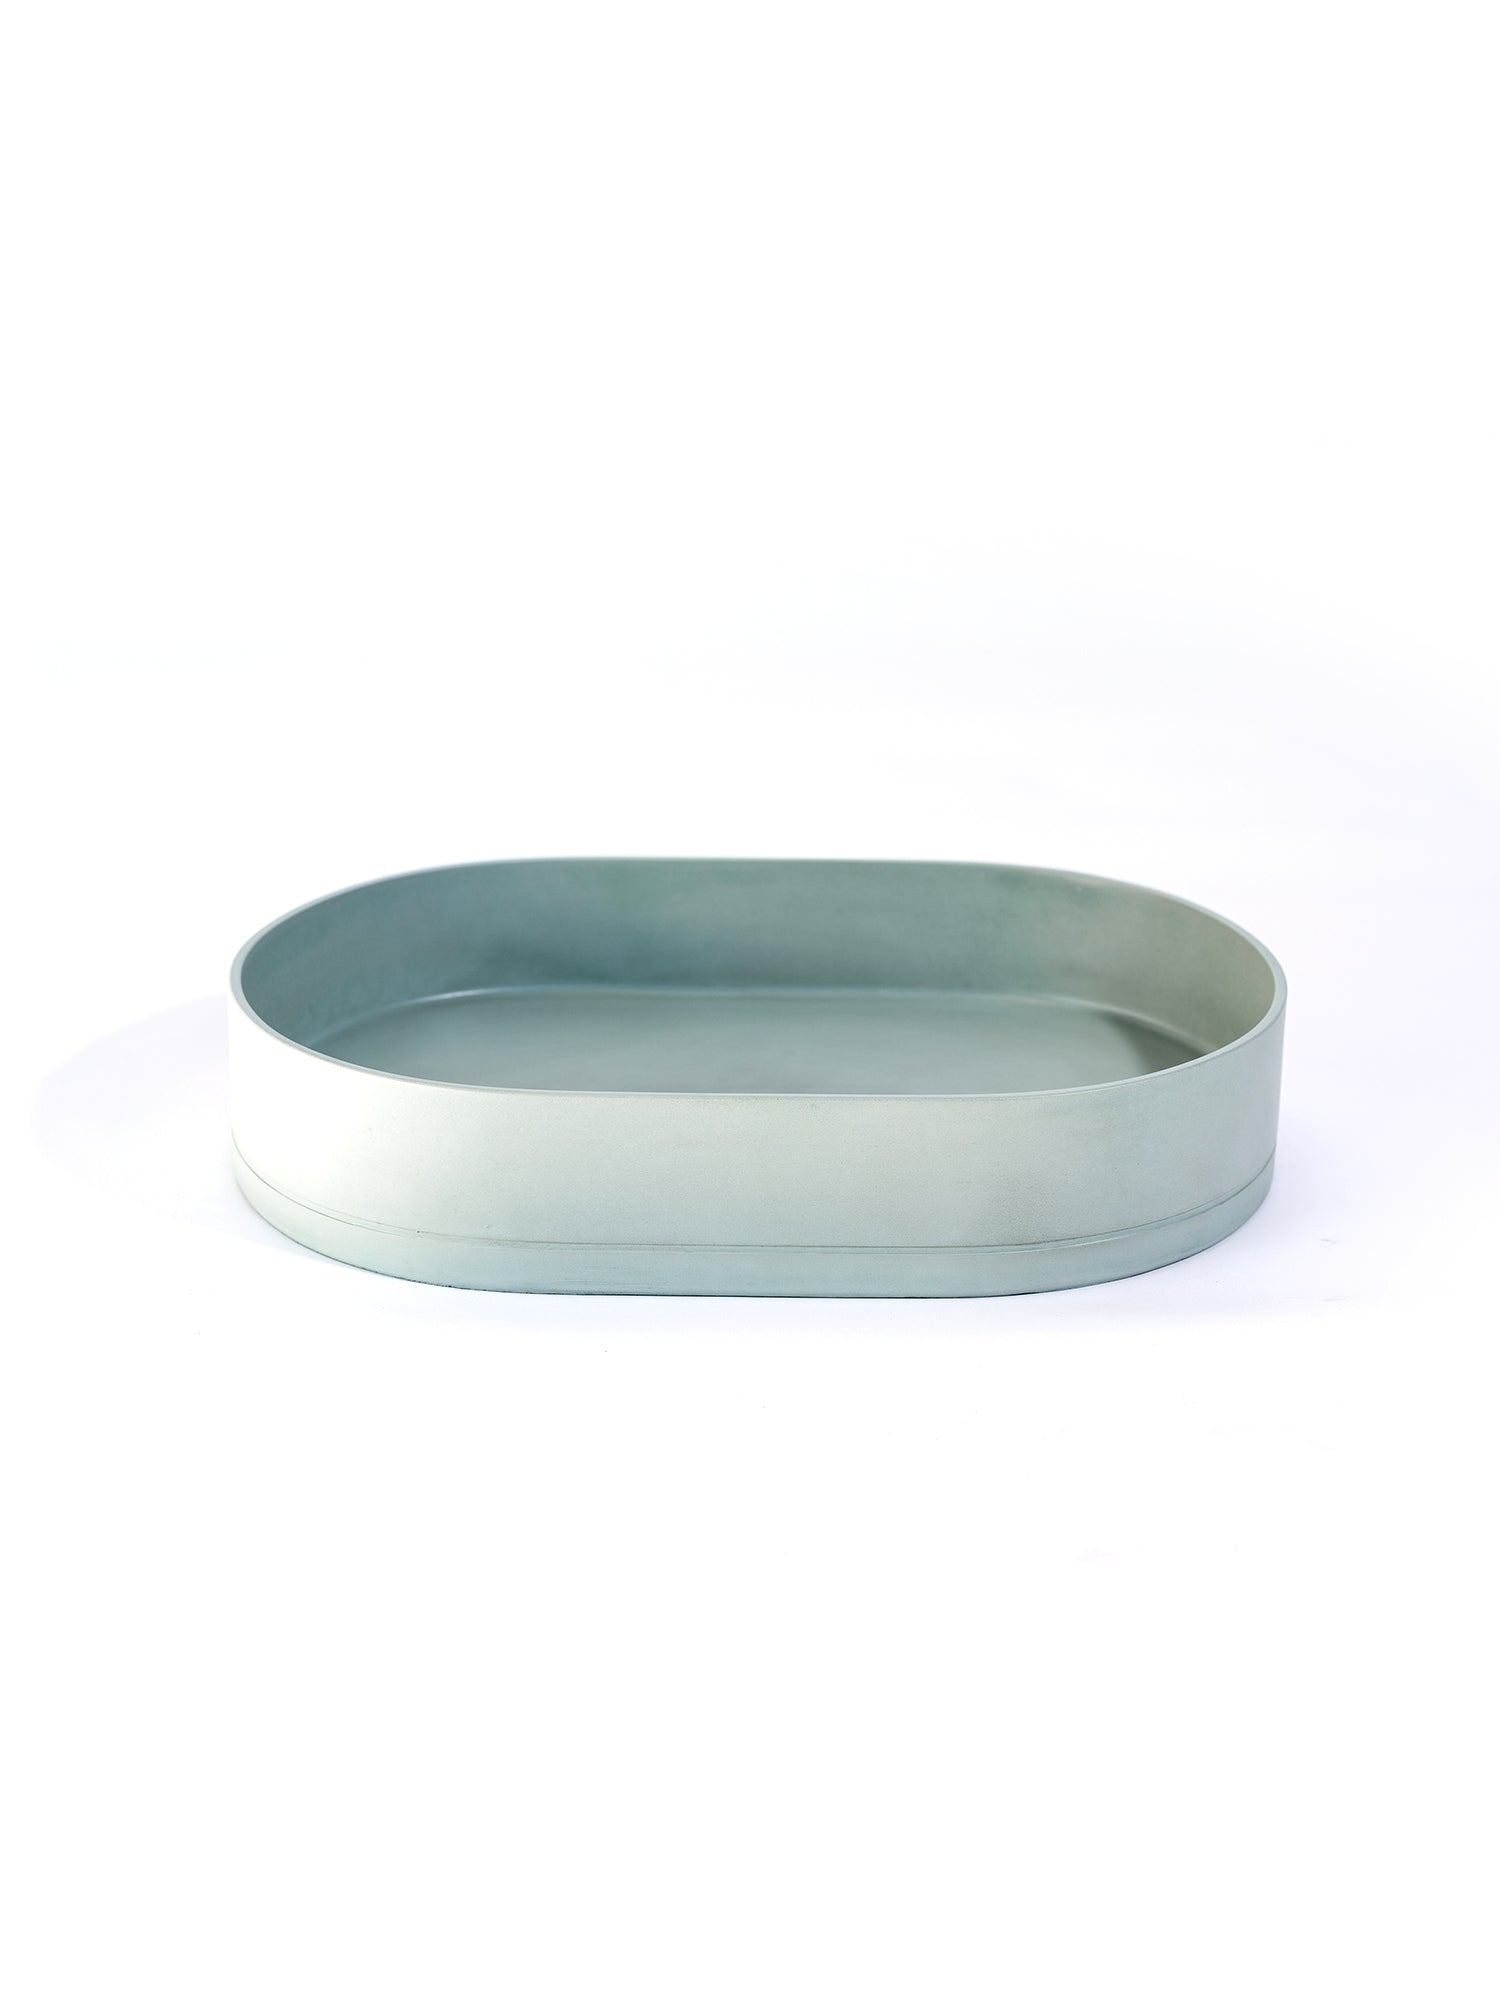 Pill Concrete Countertop Basin (Avail. in 14 Colours)